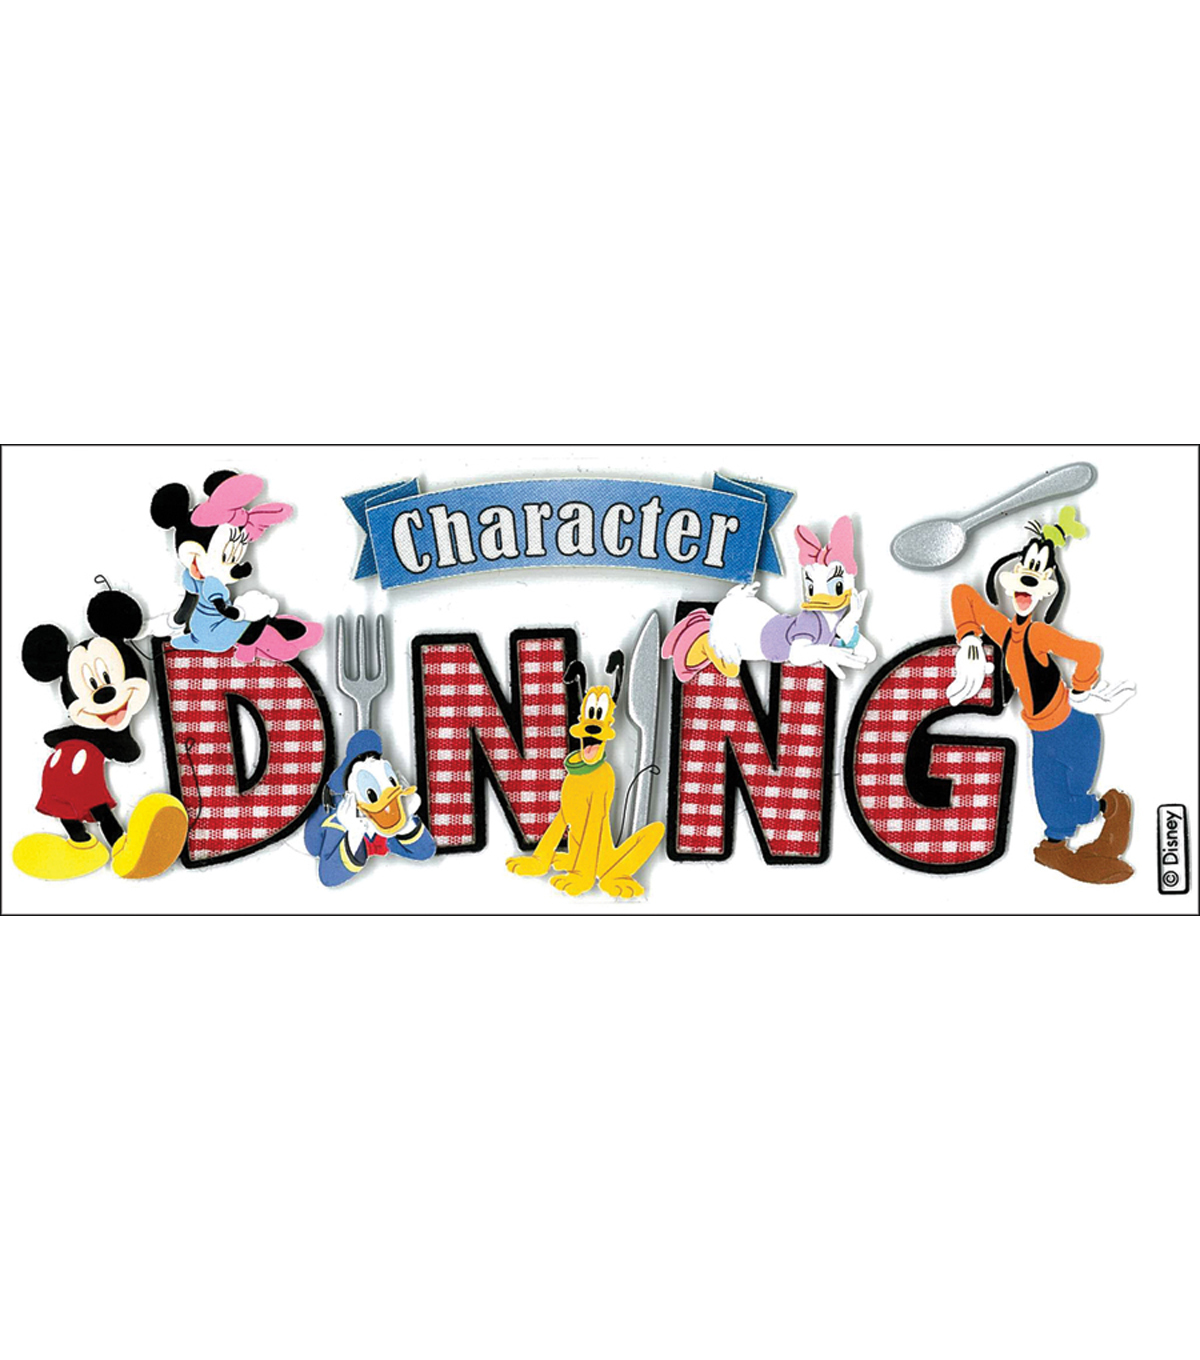 Disney Title Dimensional Sticker-Mickey/Character Dining